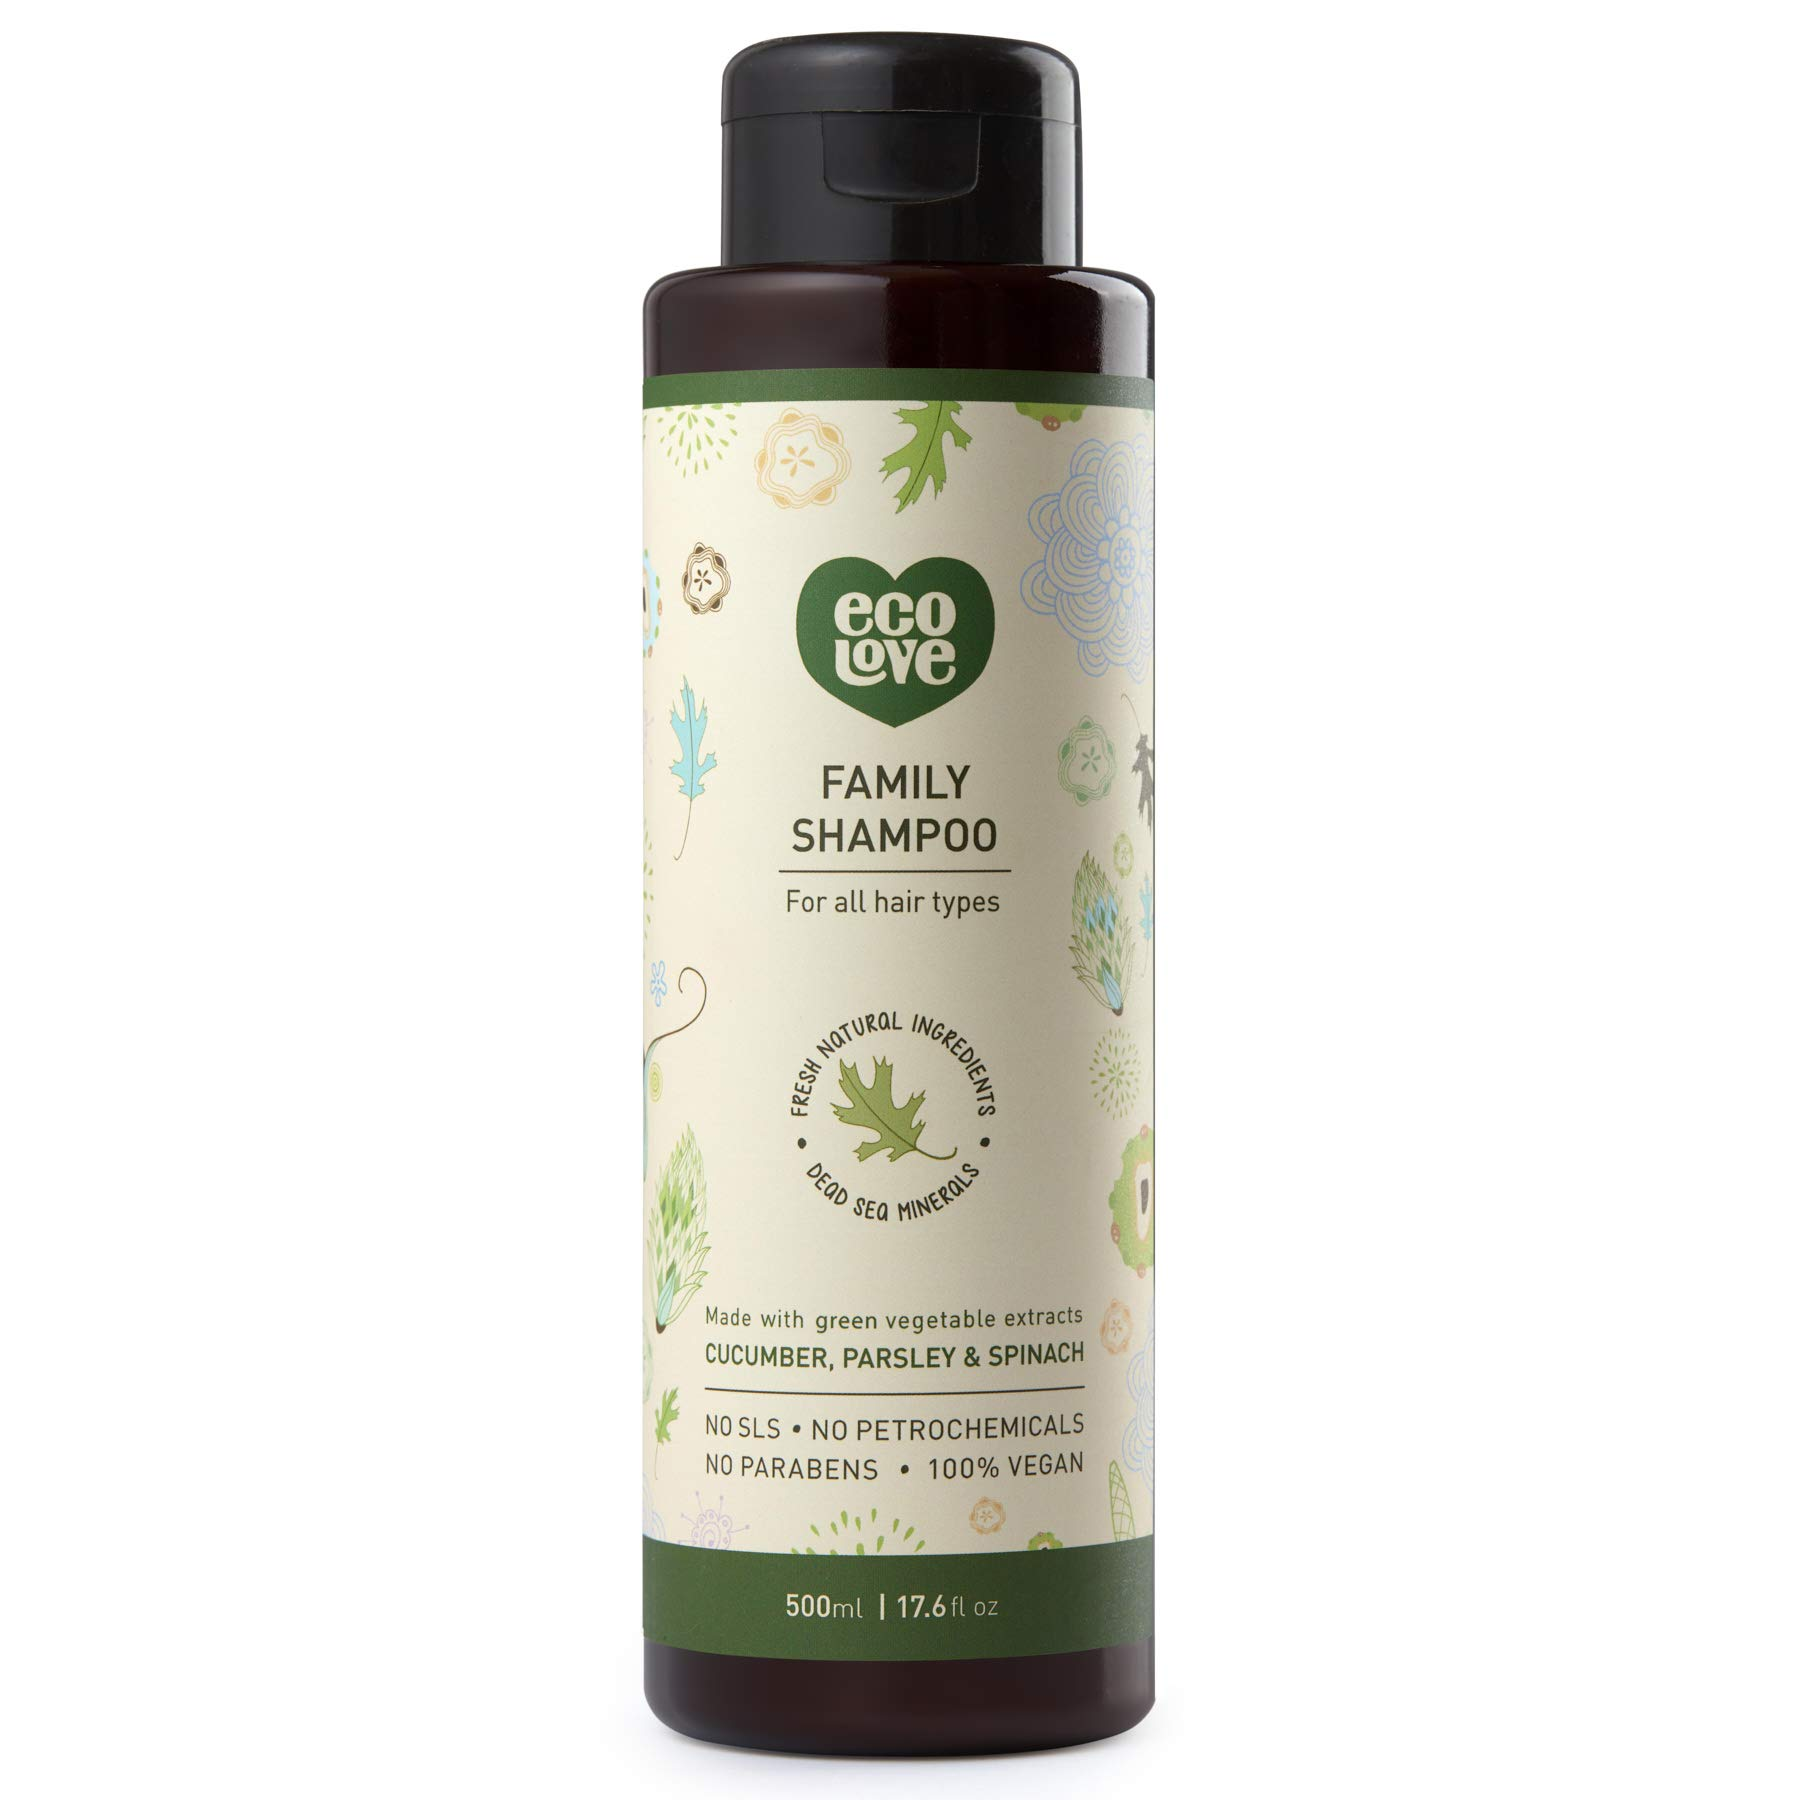 ecoLove Natural Shampoo with Organic Cucumber Spinach and Parsley for All Hair Types, Vegan Shampoo for Women Men Kids Babies, SLS Paraben and Cruelty Free, 17.6 oz